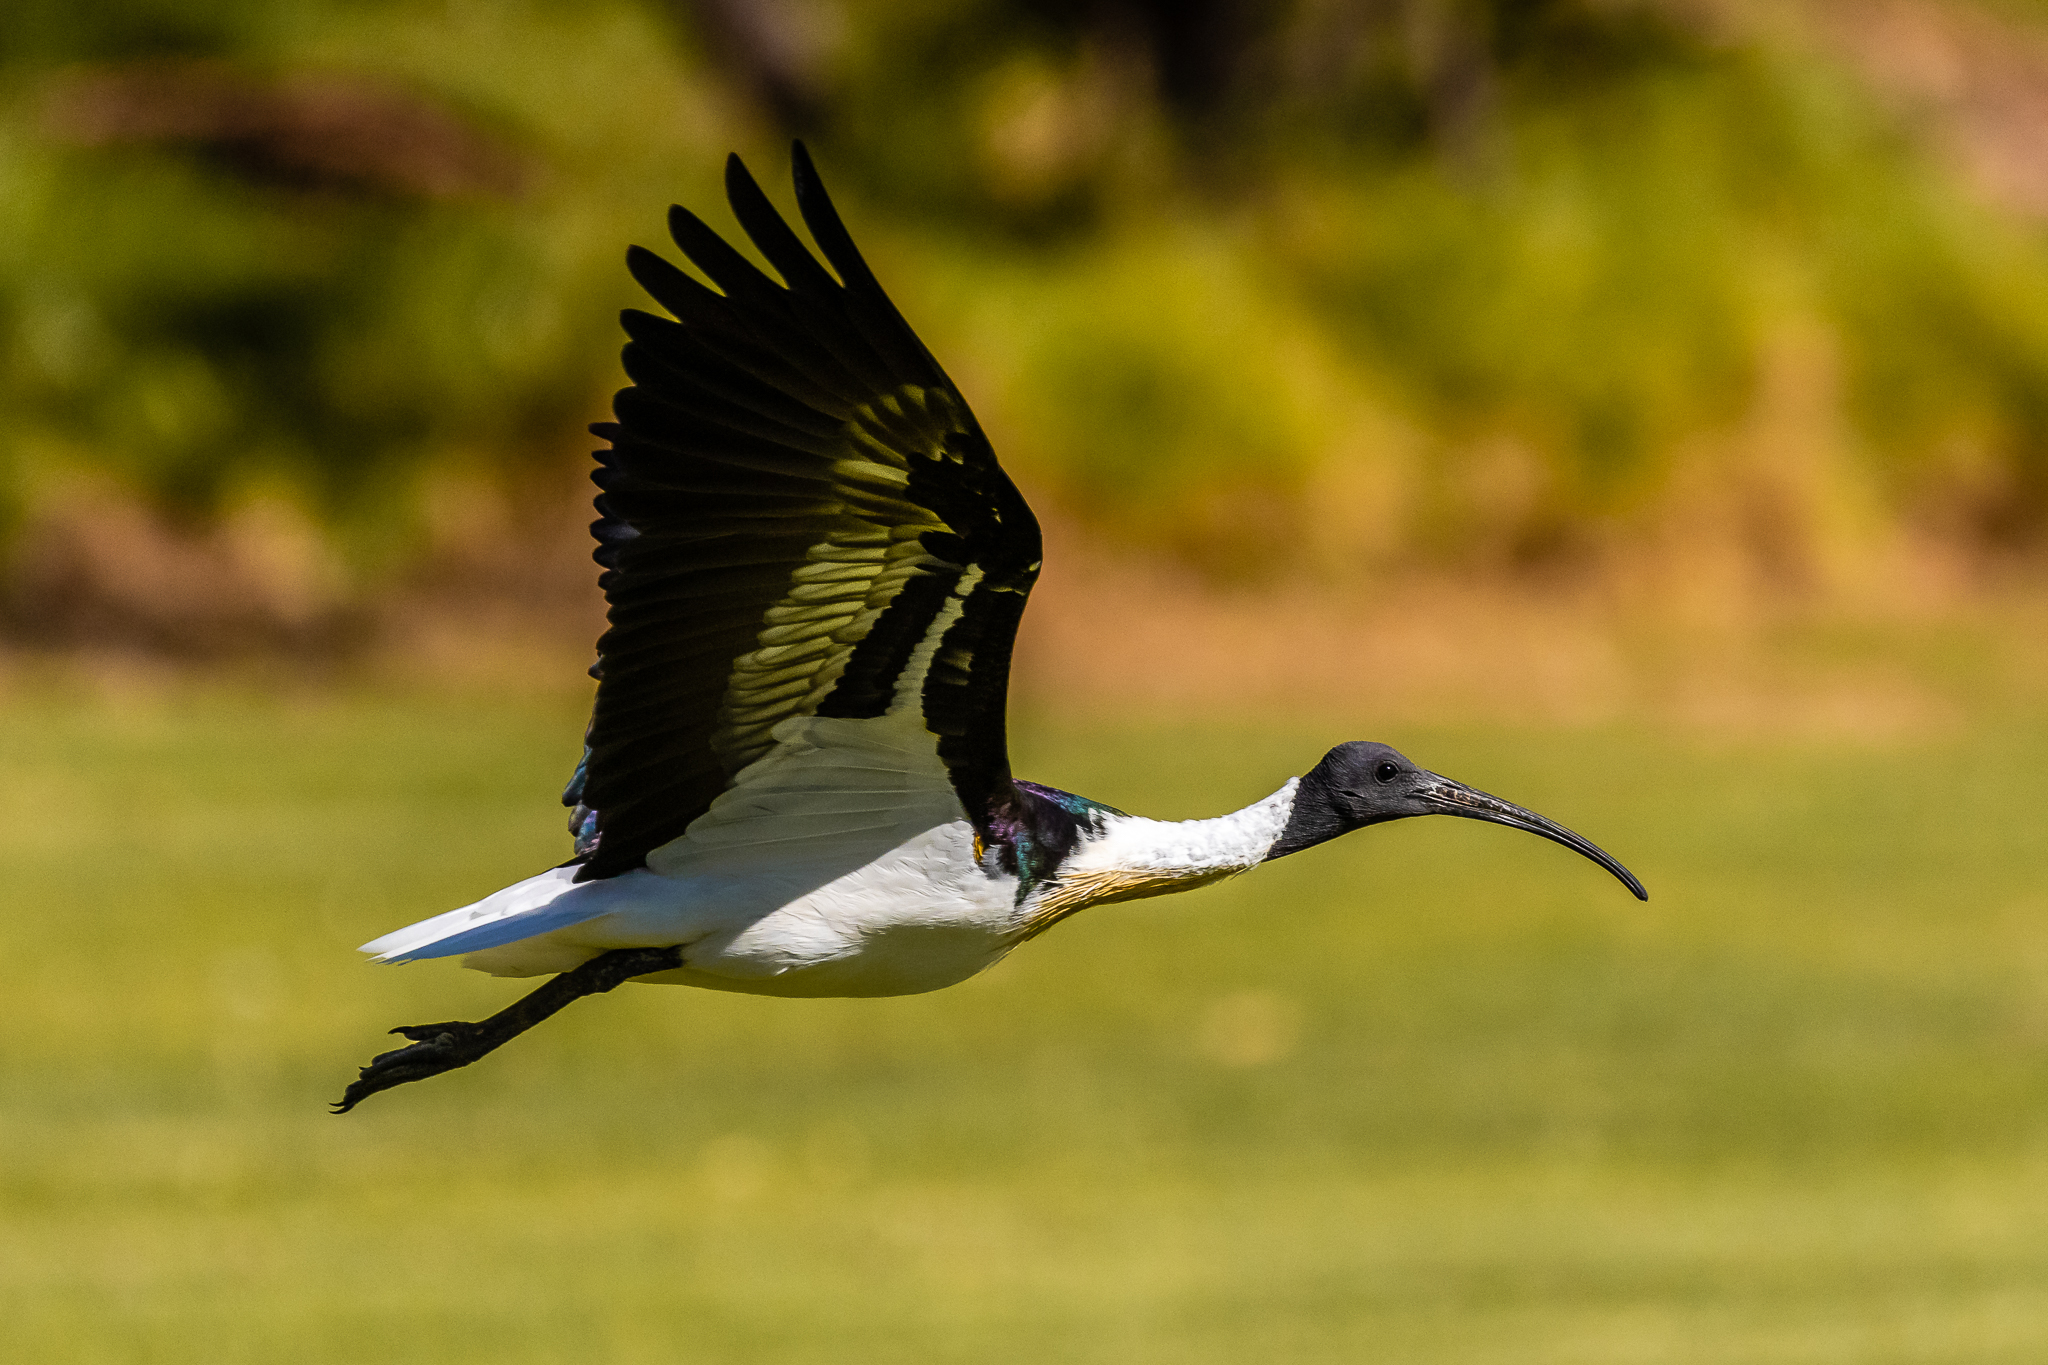 Straw-necked Ibis (70 cm) are seen feeding on insects in the parks around Perth. Often in small to very large flocks.